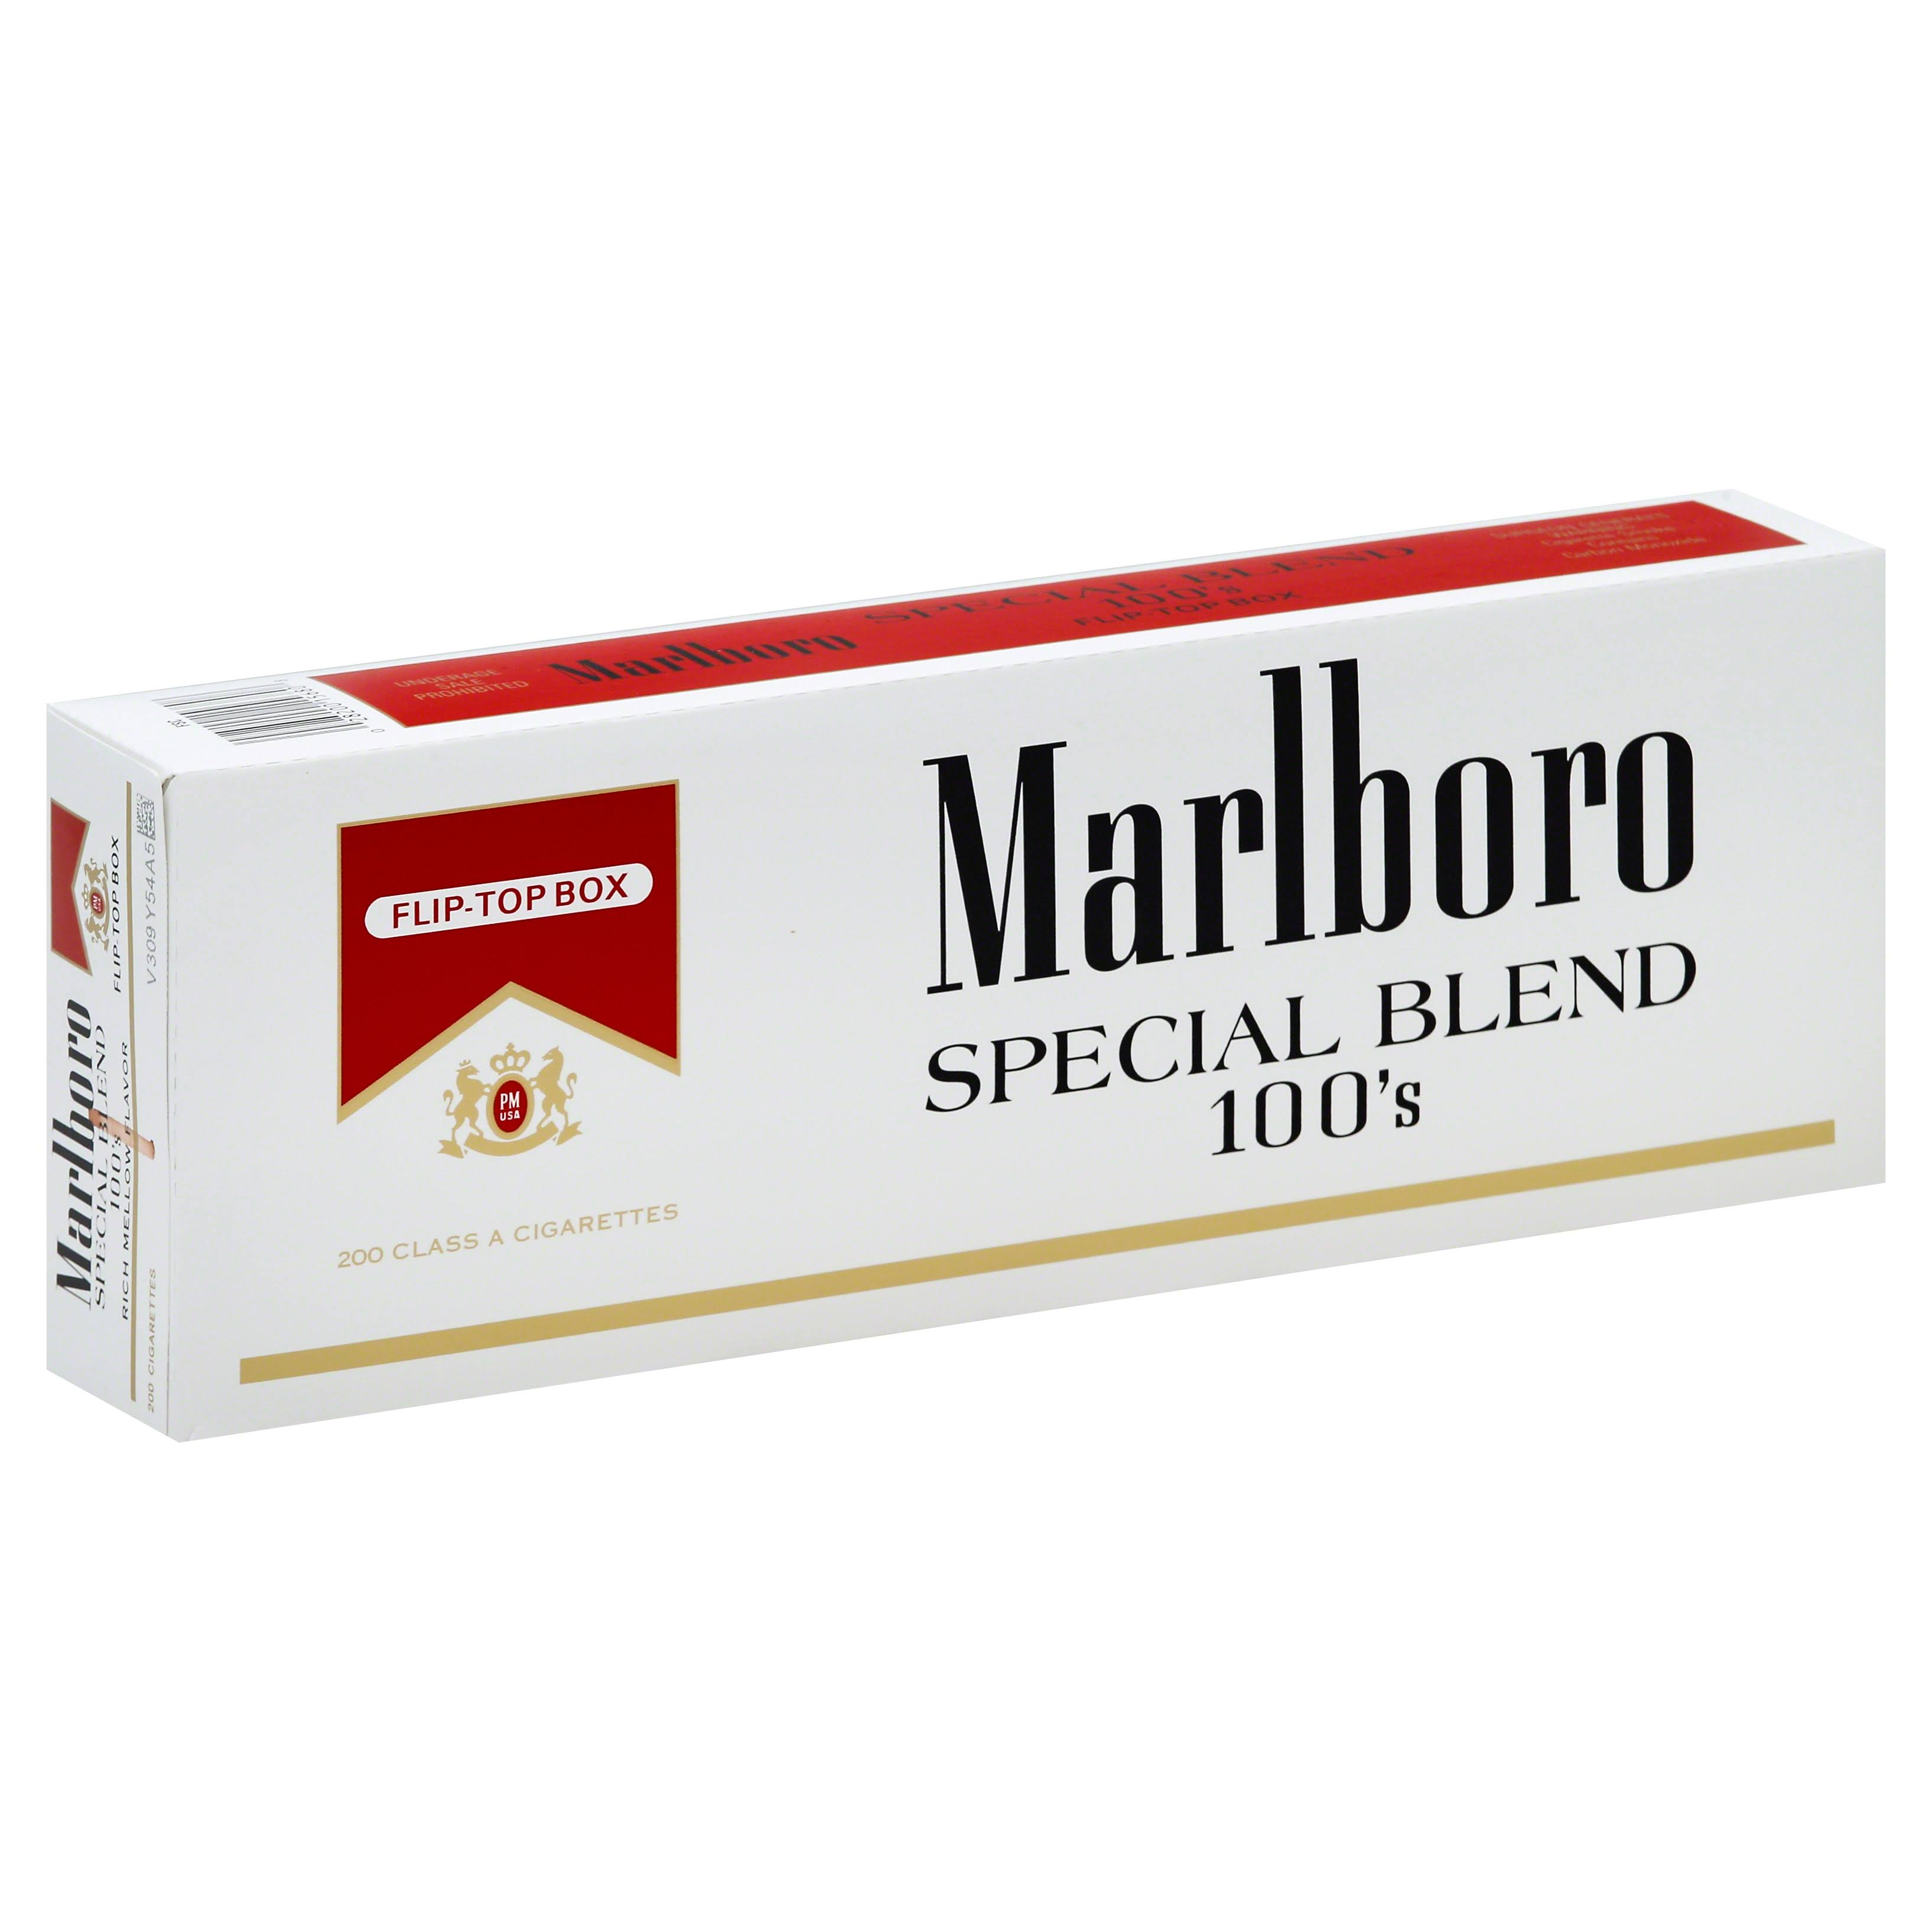 Marlboro Cigarettes, Special Blend, 100's, Flip-Top Box - 200 cigarettes